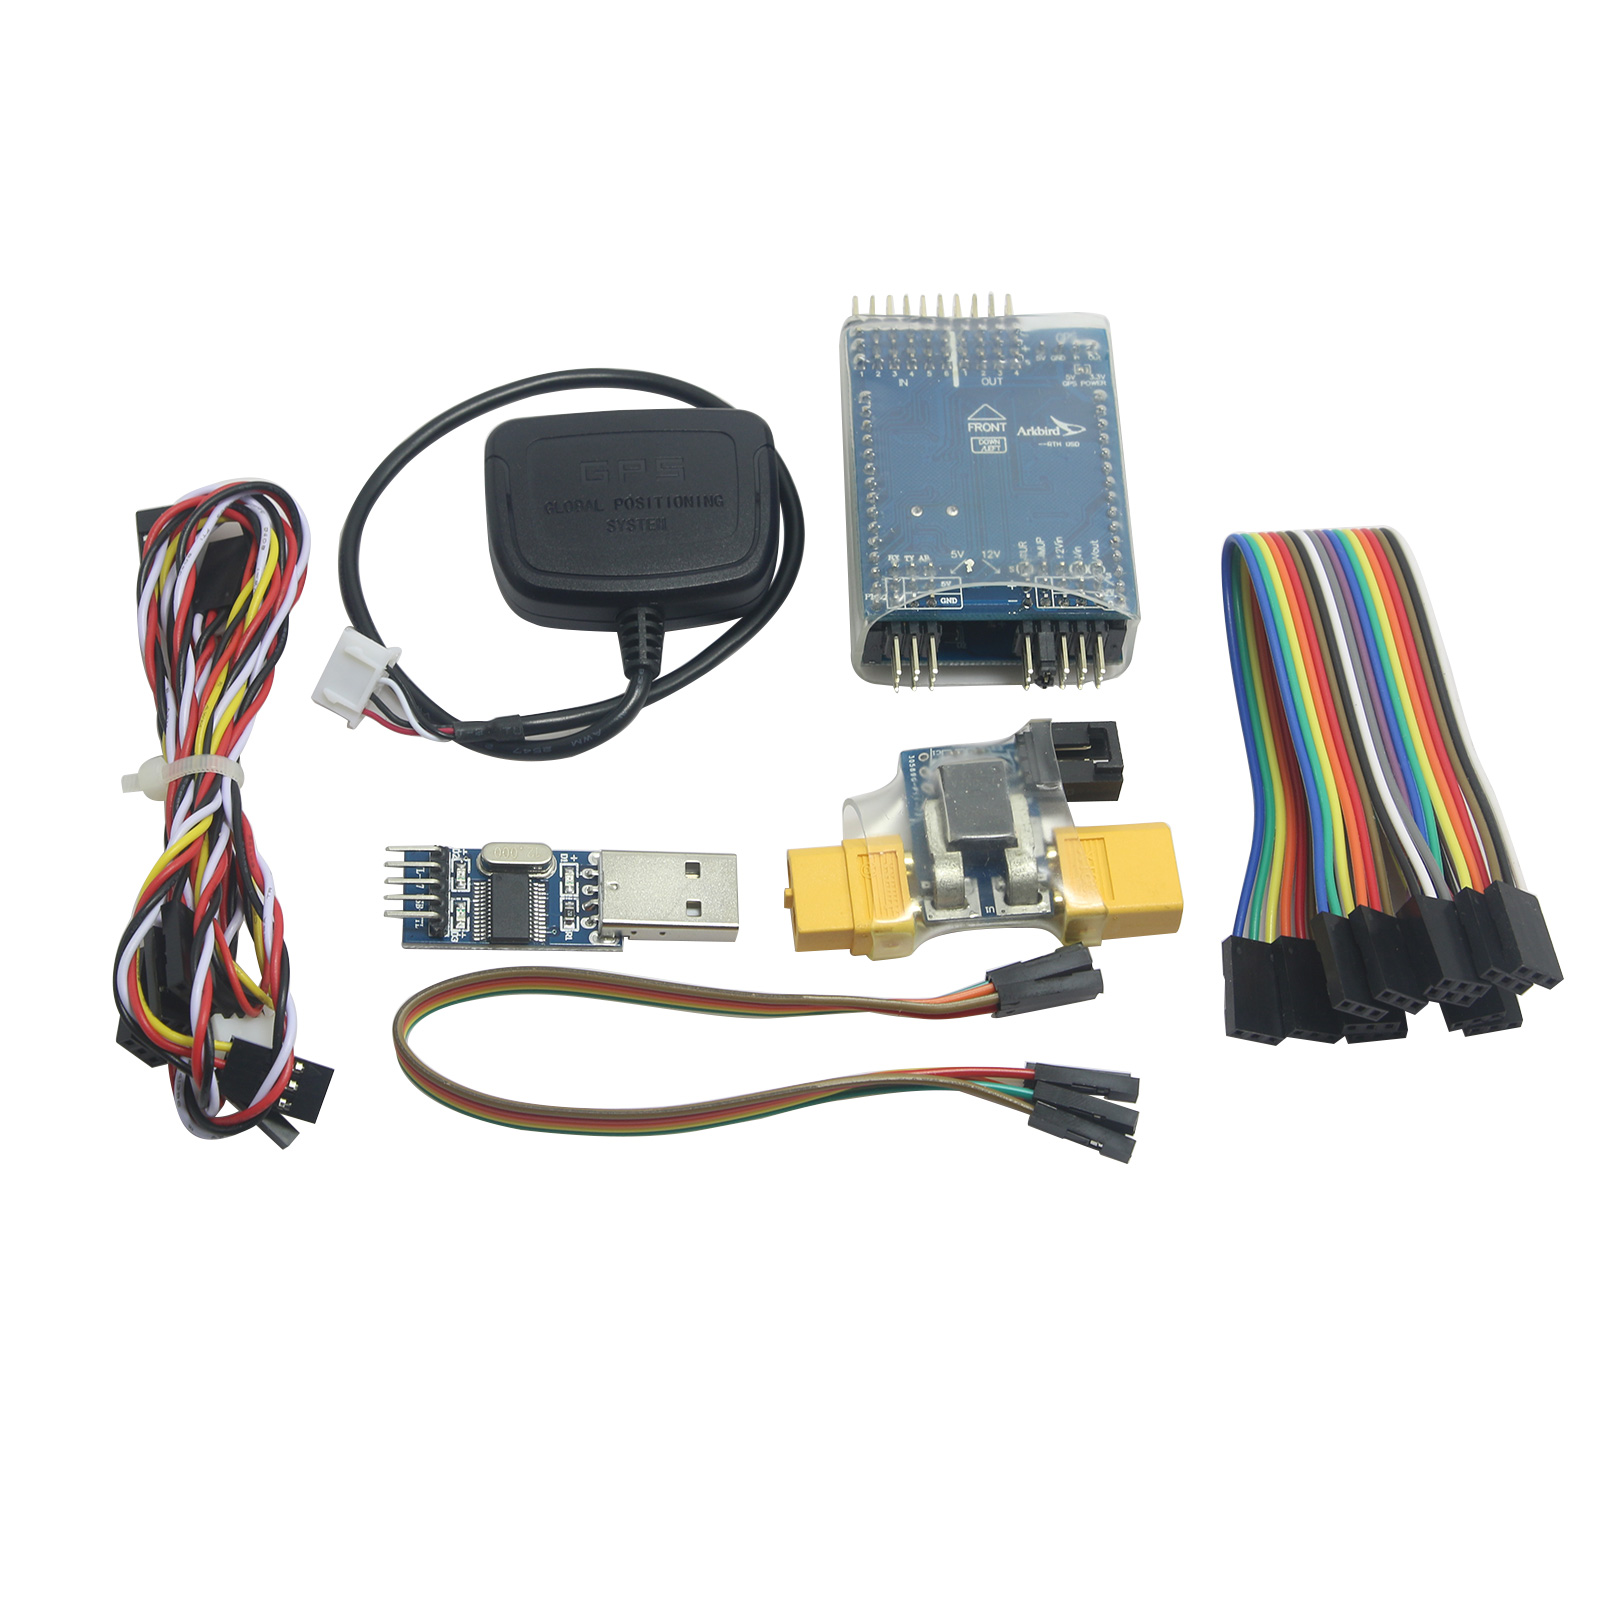 ARKBIRD Flight Controller M8N GPS Current Meter Integrate OSD Barometer for FPV Fixed Wing RC Airplane